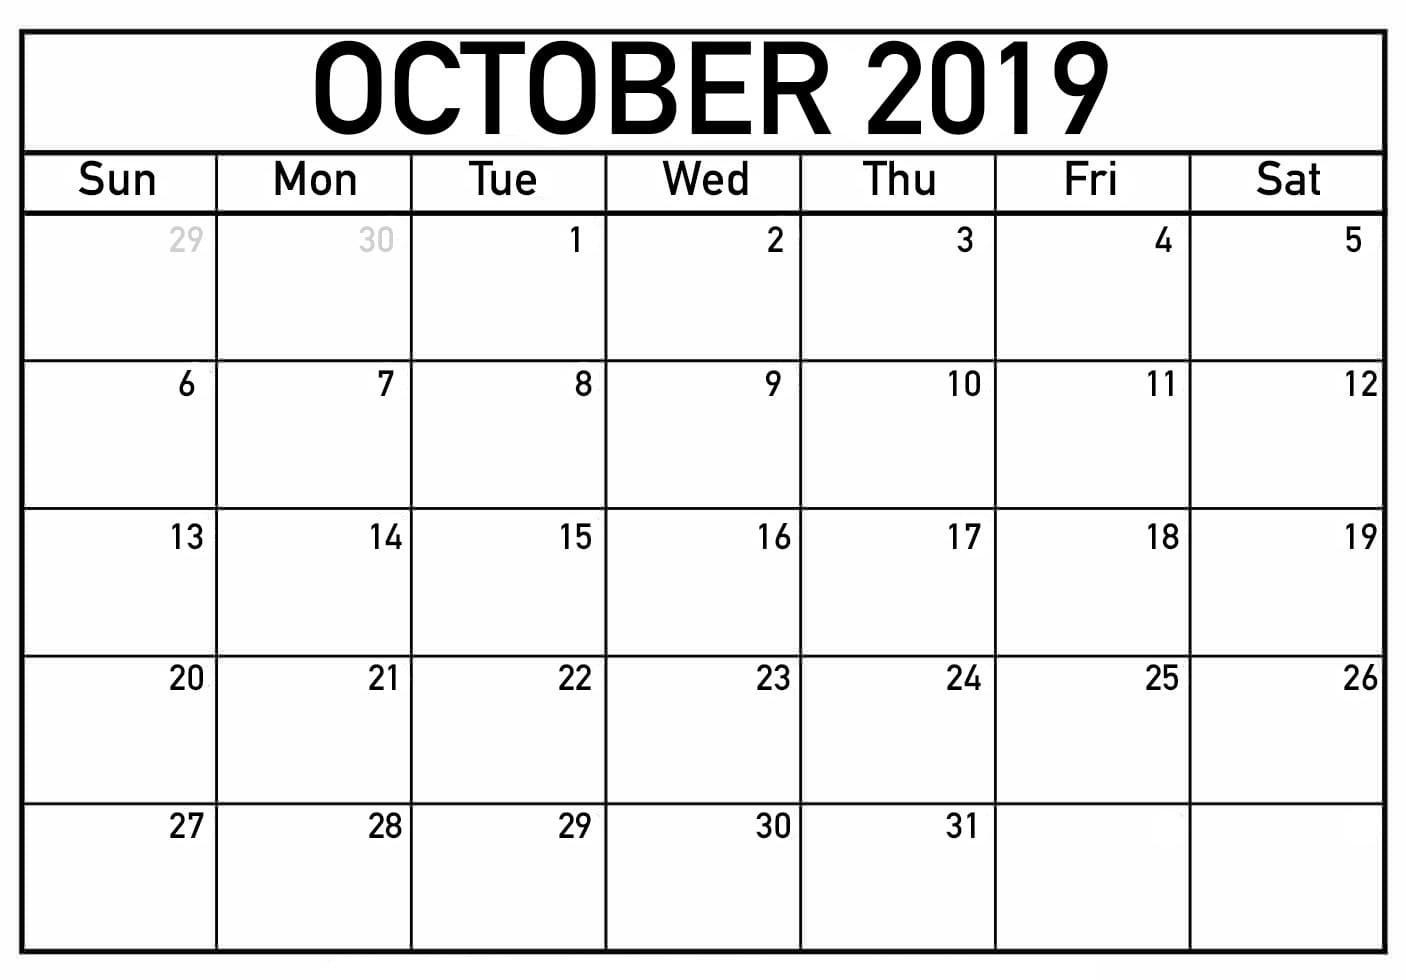 October 2019 Printable Calendar Word, Pdfmonth - Latest